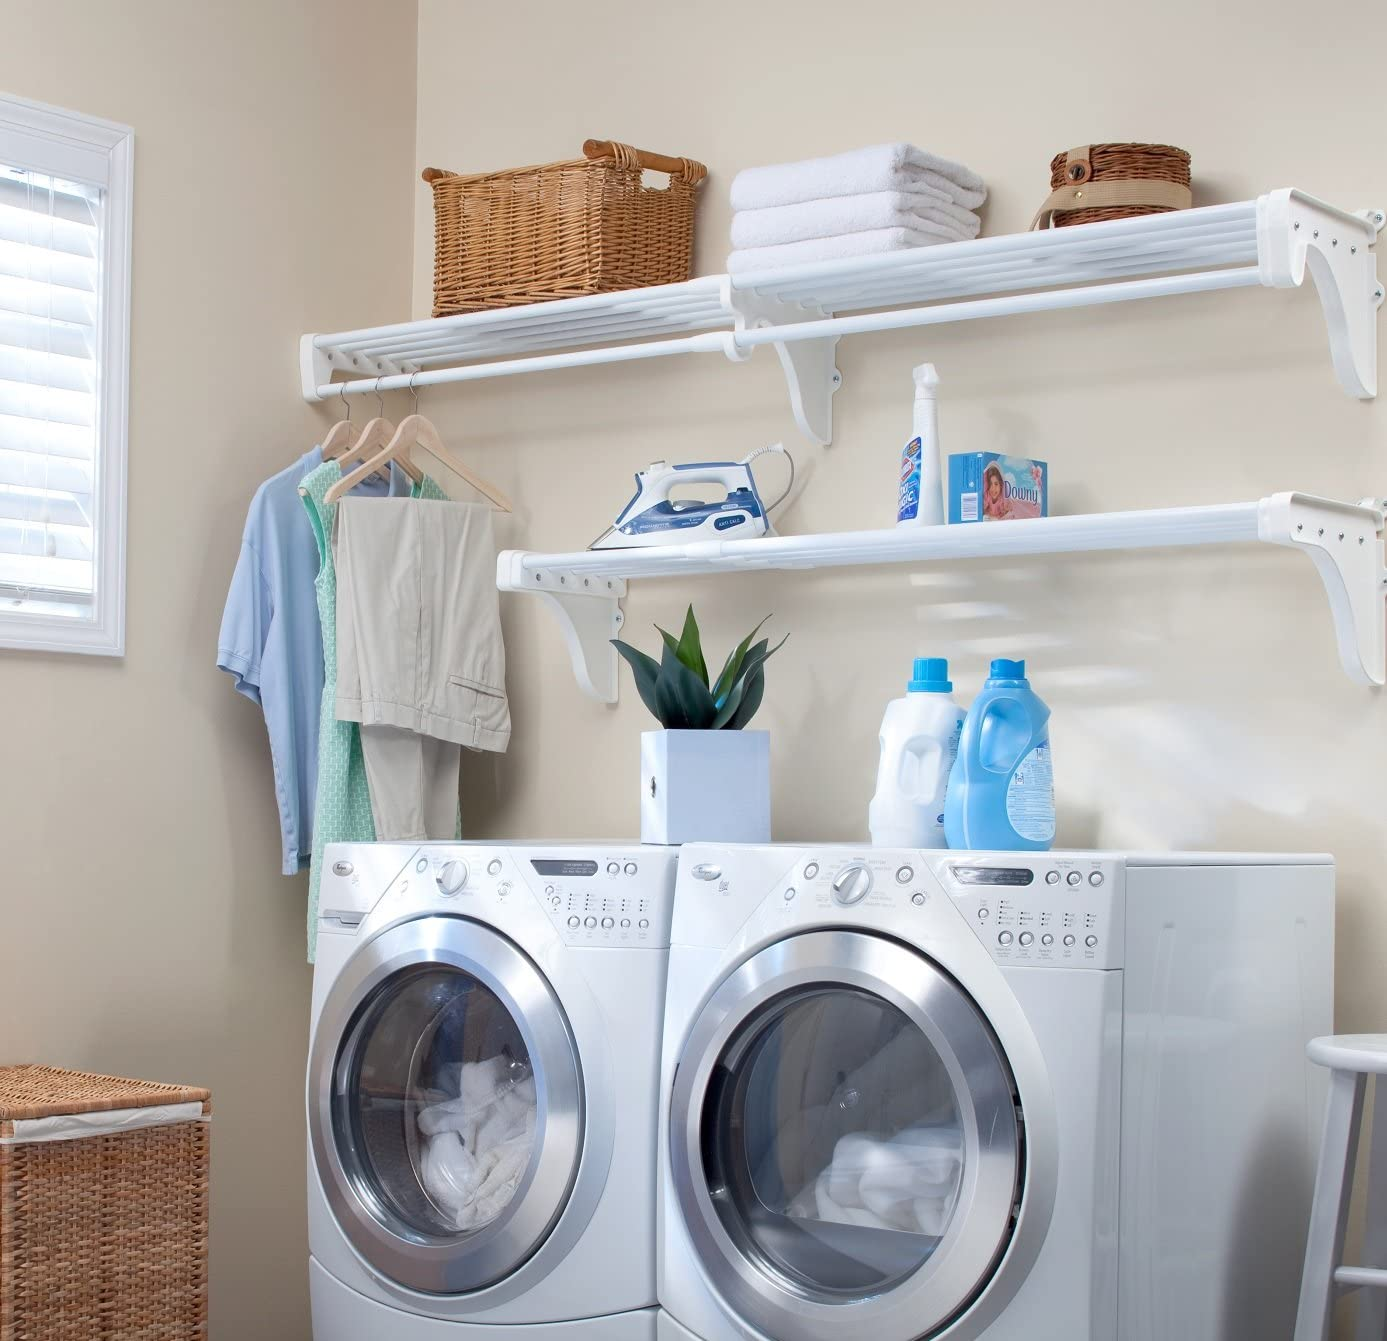 Amazon Com Ez Shelf Diy Expandable Organizer Shelves For Laundry Utility Room Over Washer Dryer Wall Storage Wire Shelving Alternative 2 Shelf Pack Expands From 45 To